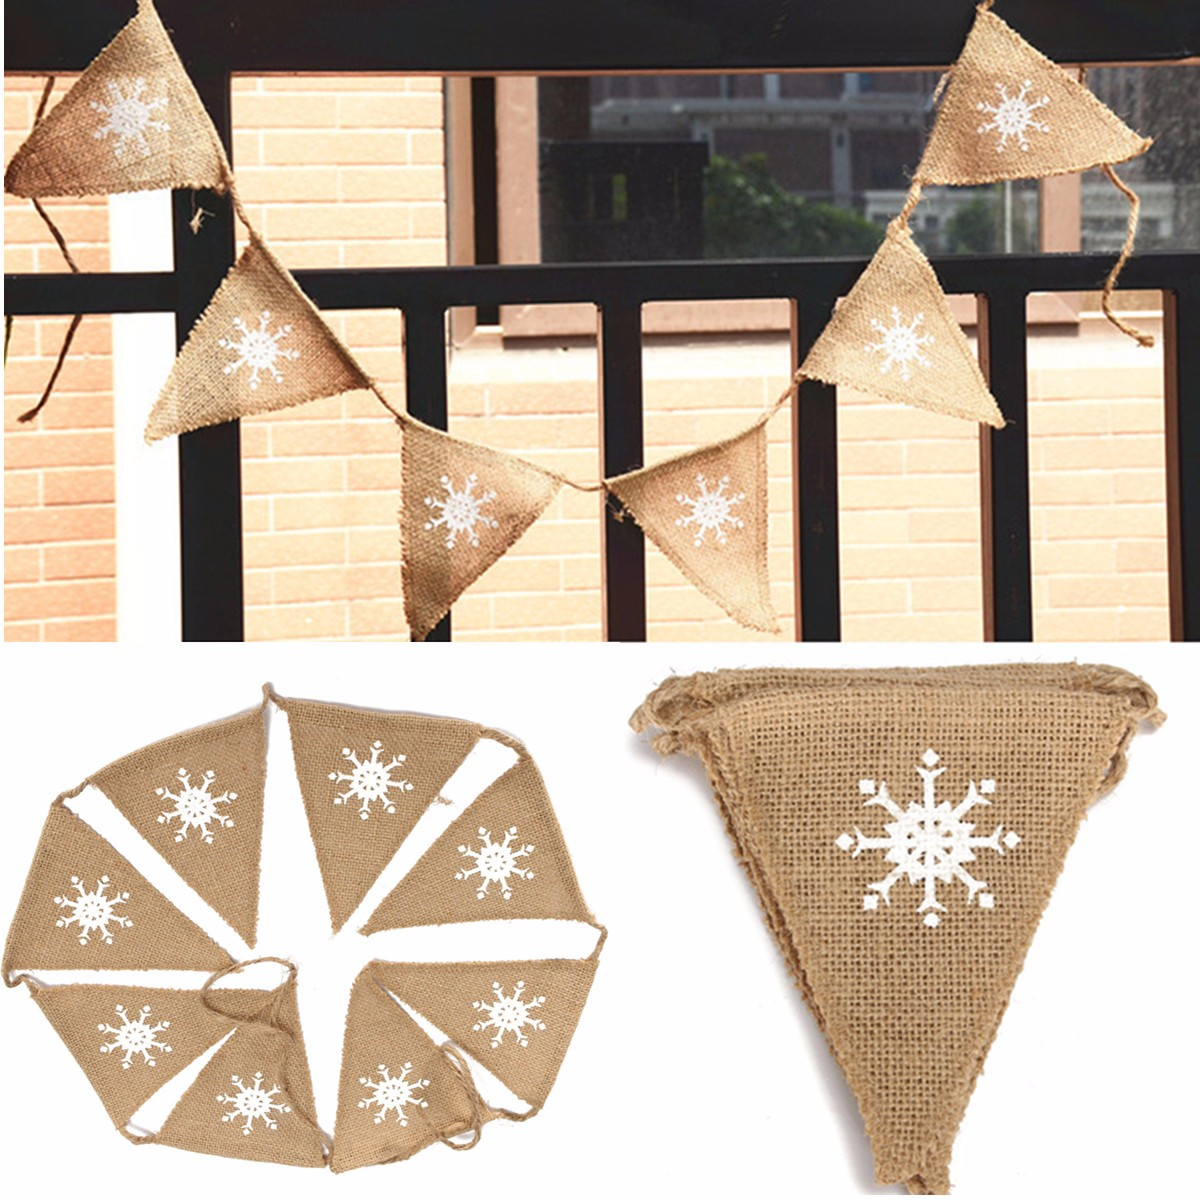 1.6M Snowflake Pattern Hessian Burlap Fabric Rustic Wedding Banner Bunting Decoration